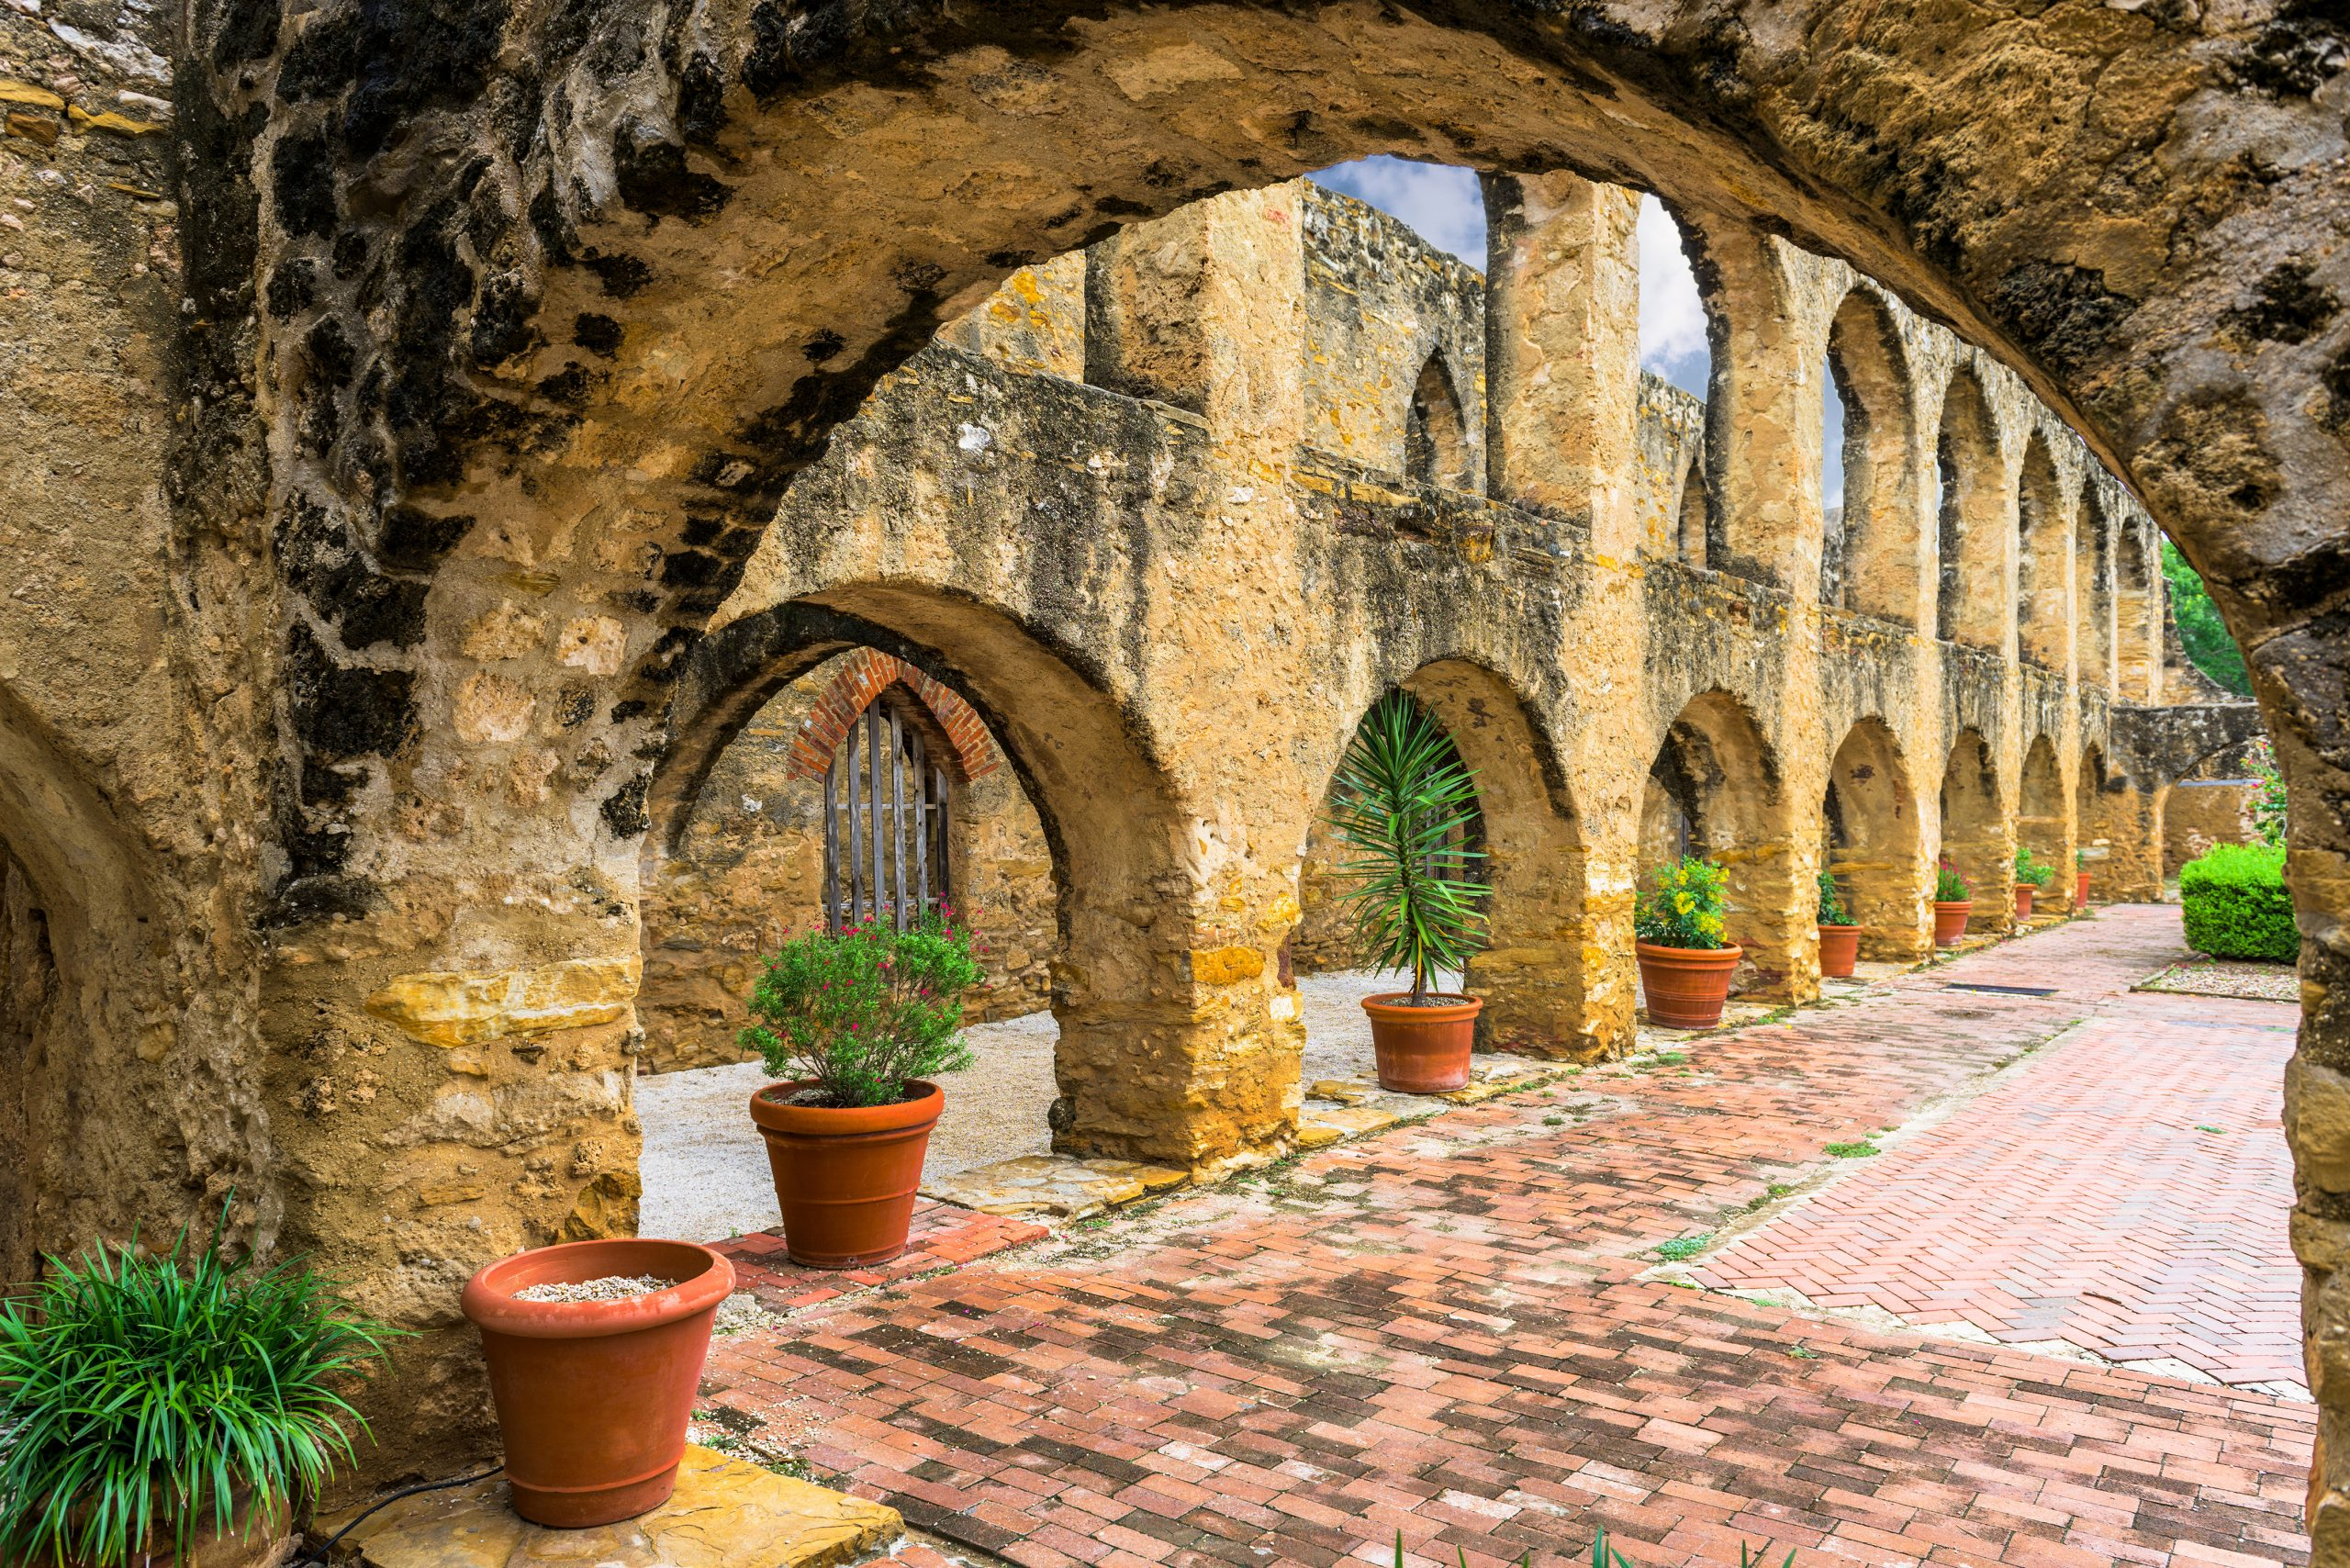 photo of walkway in mission san jose, one of the best historical sites in texas